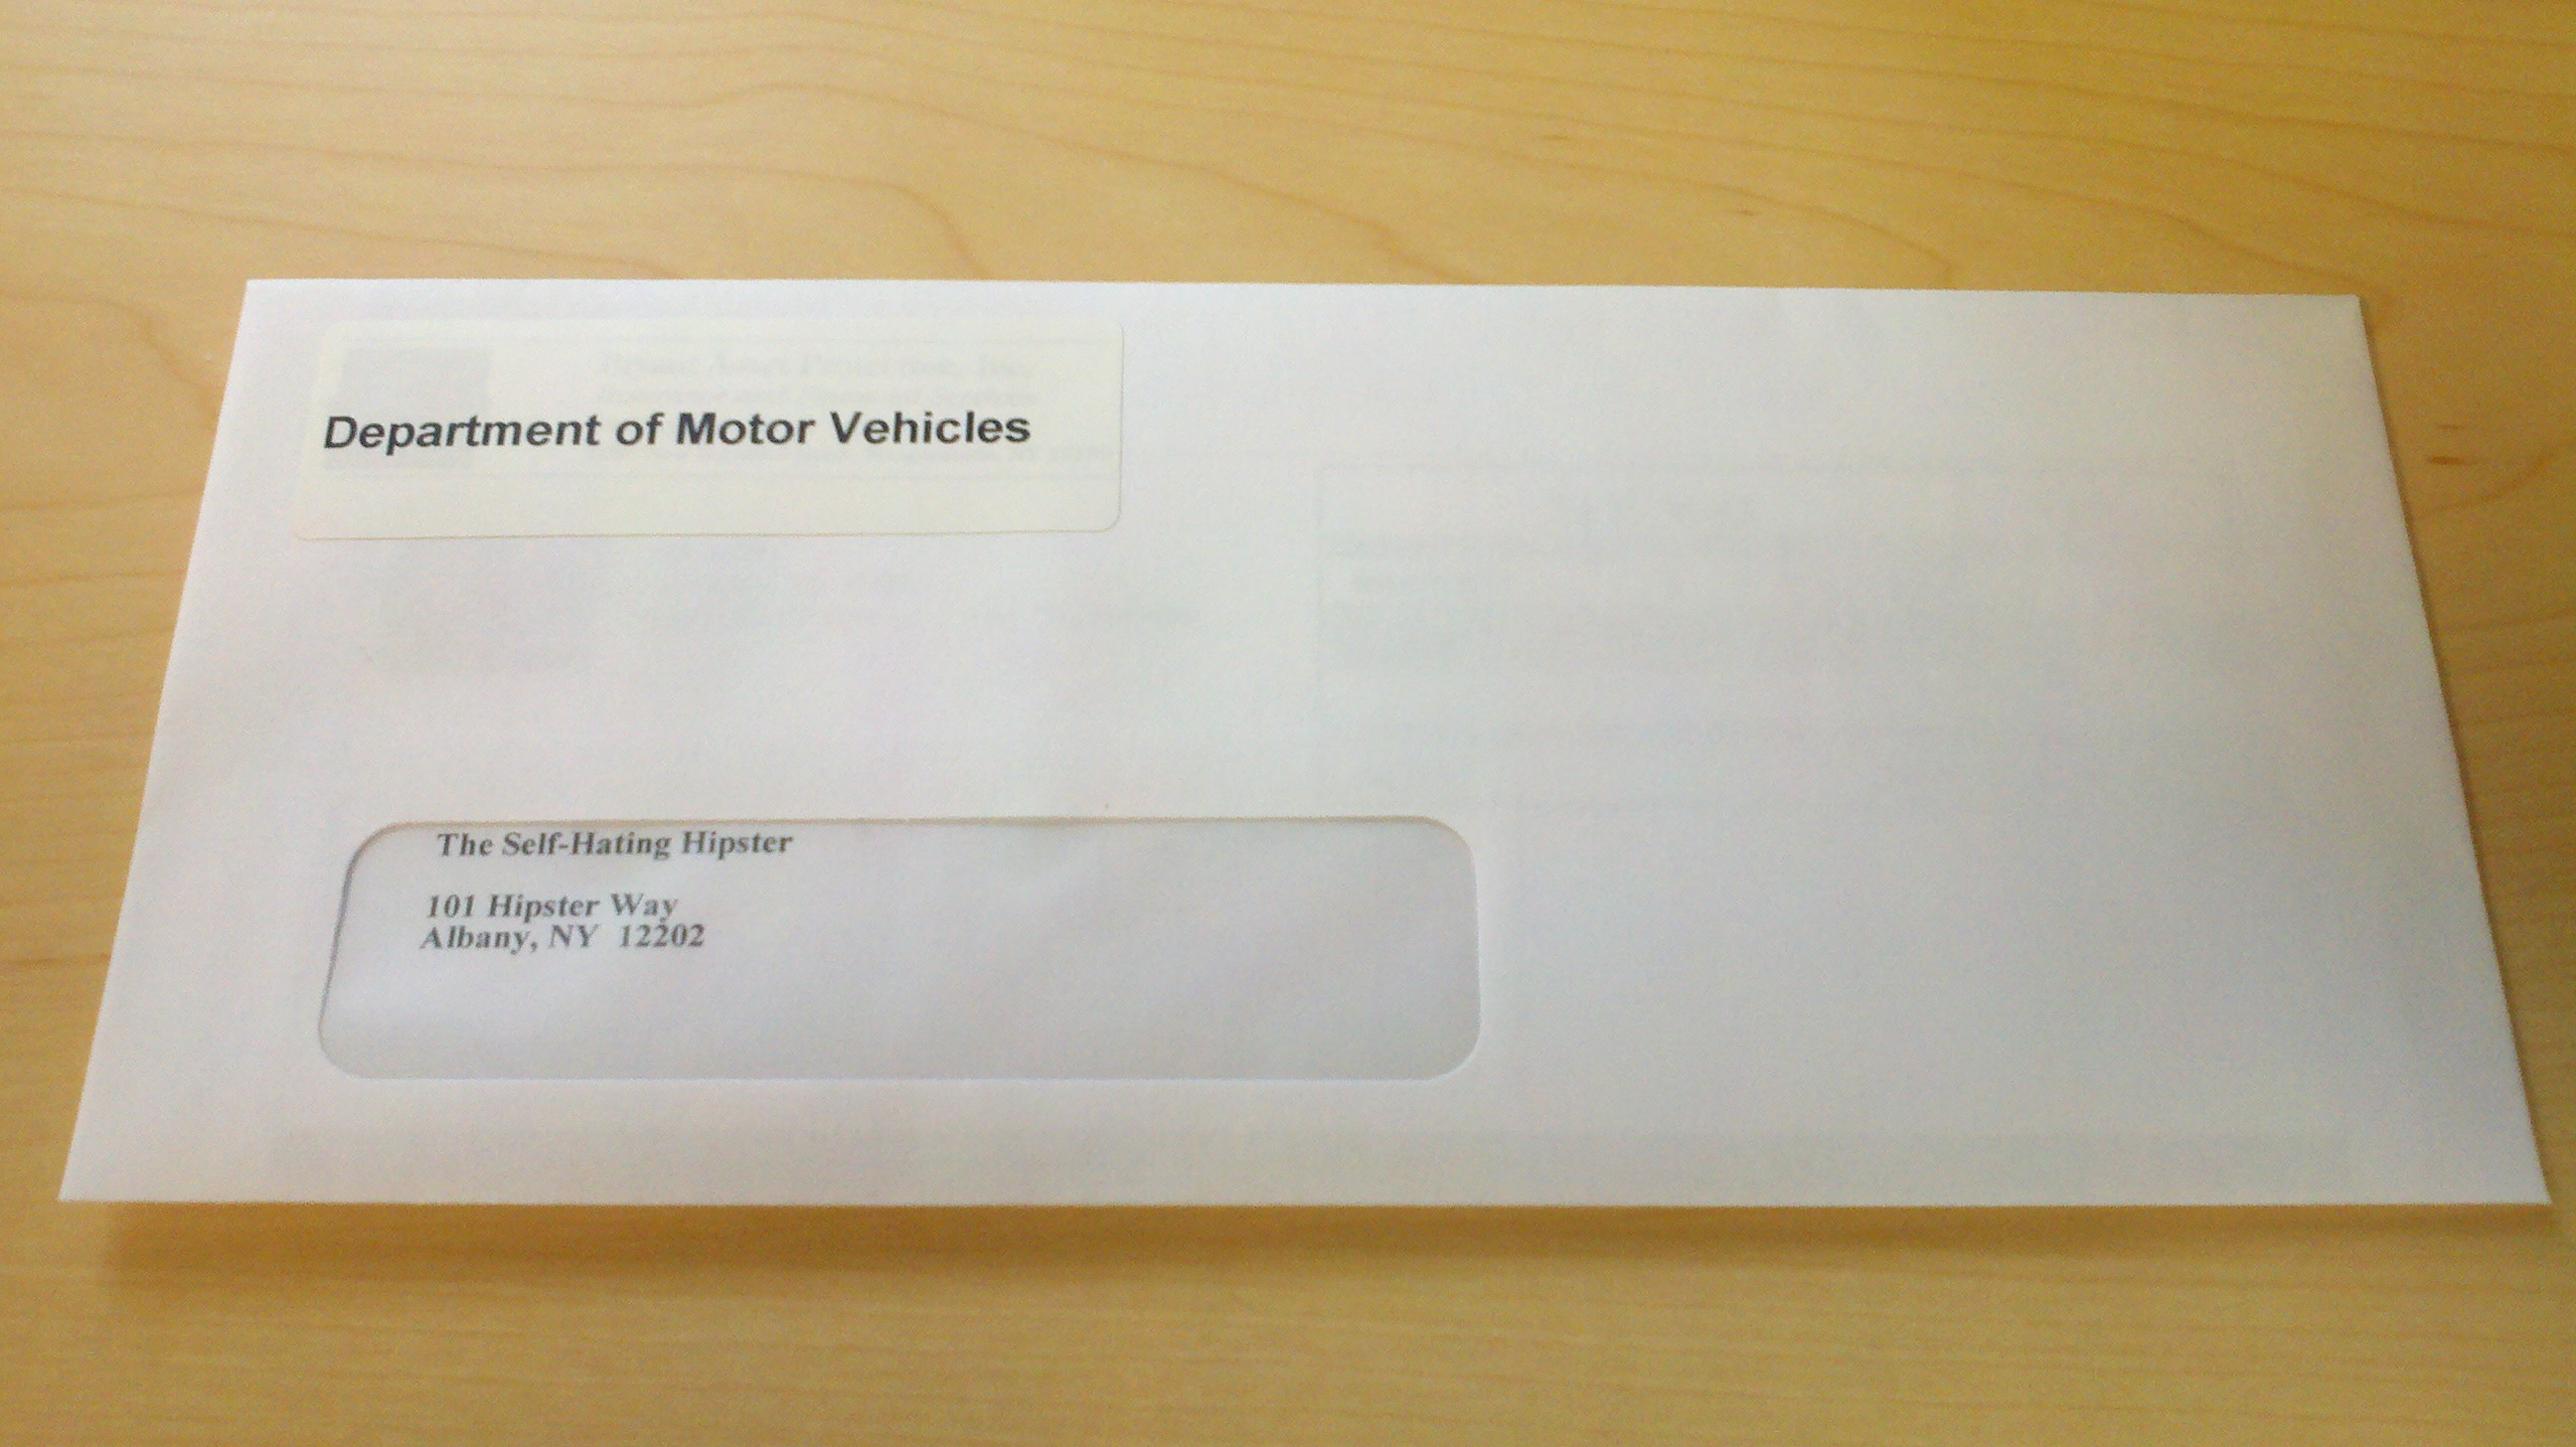 In this case, I had a vehicle registration renewal invoice from the Department of Motor Vehicles to the tune of ...